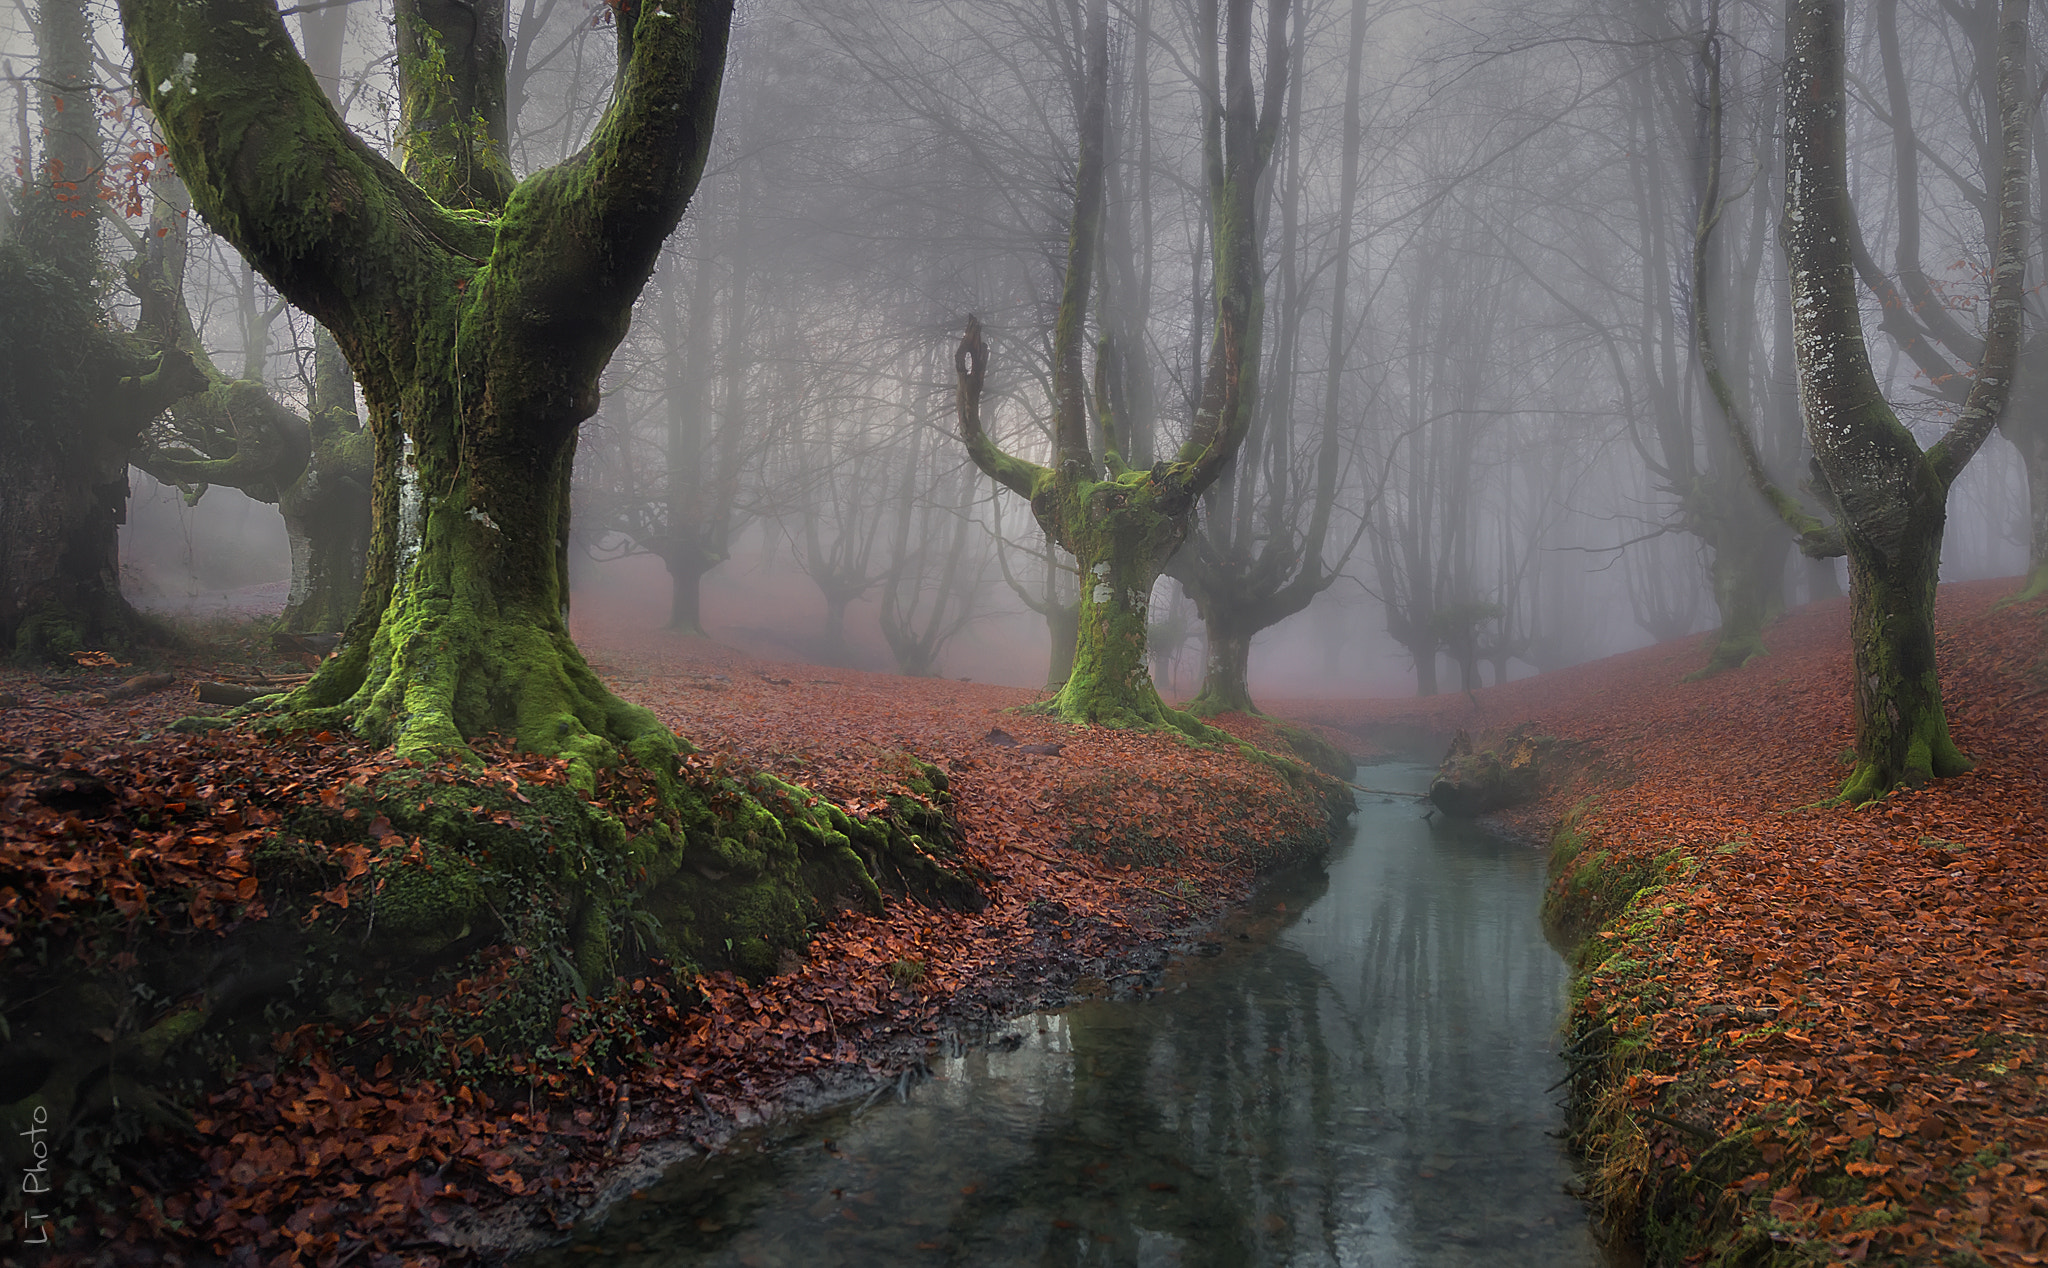 Photograph Misty Morning II by Javier de la Torre on 500px